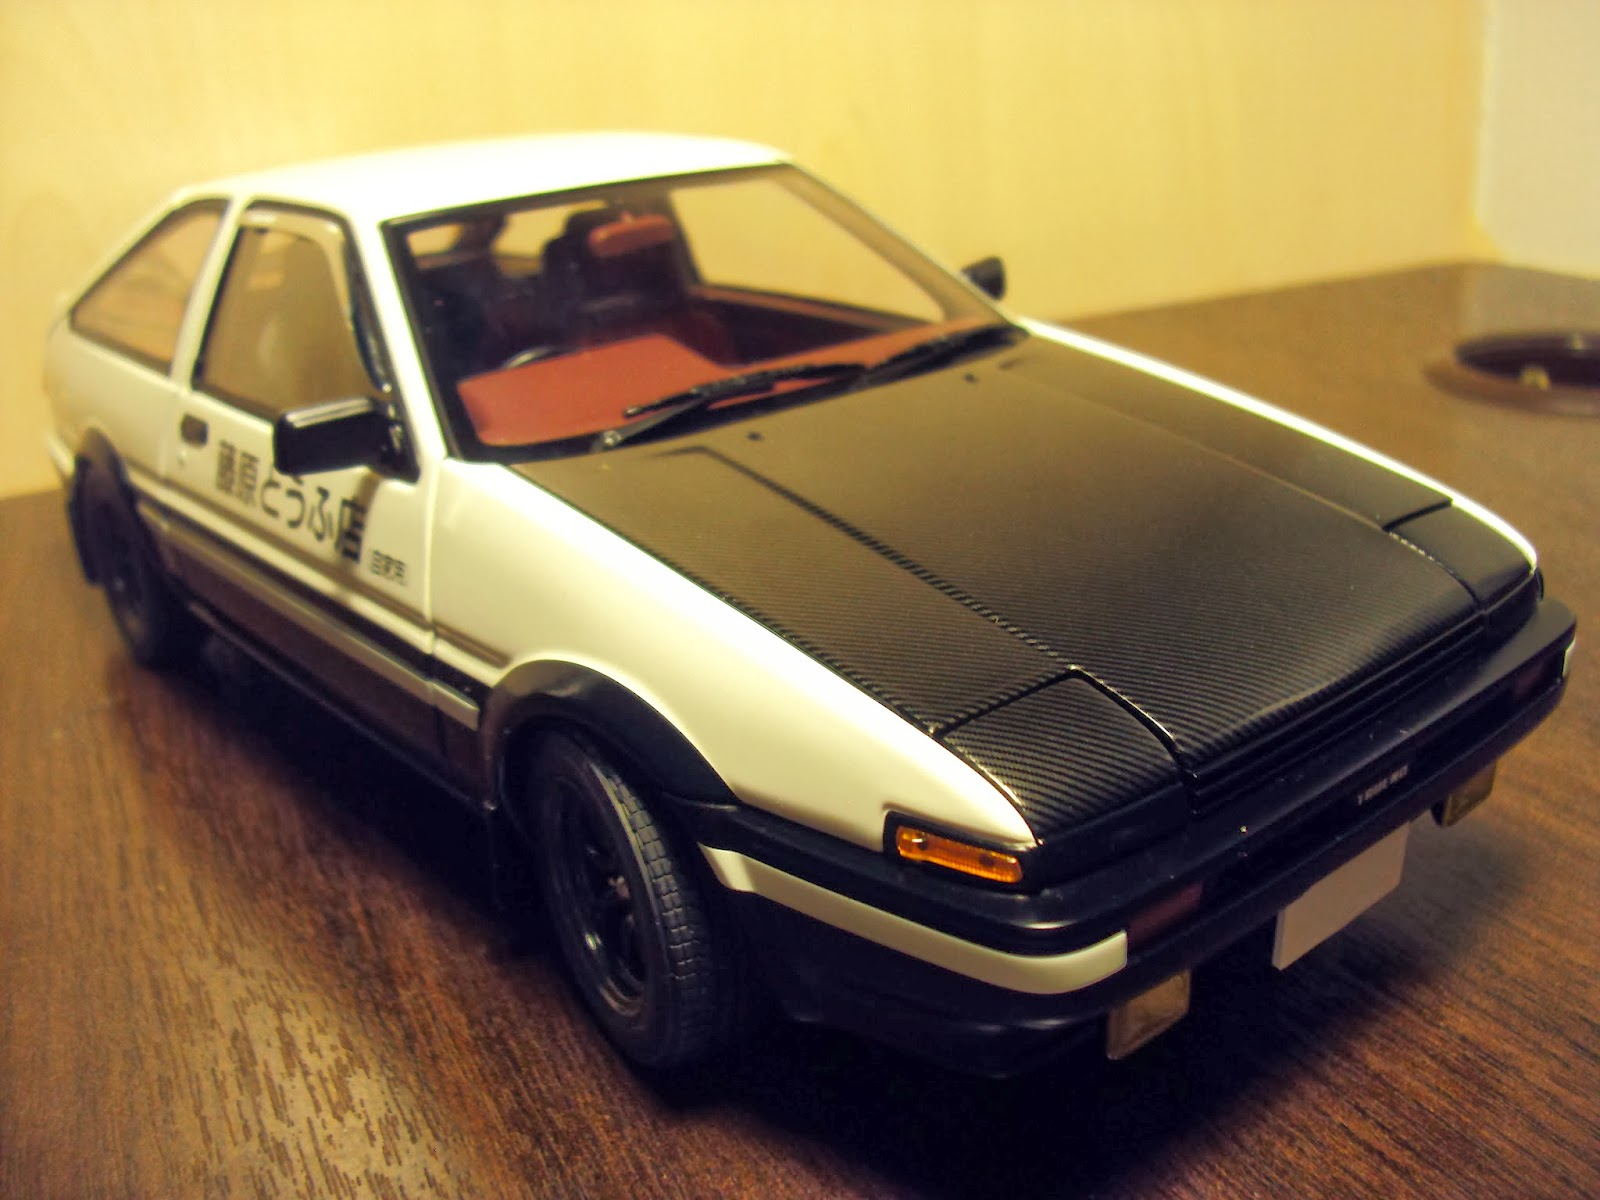 pt autoart initial d project d toyota trueno sprinter ae86. Black Bedroom Furniture Sets. Home Design Ideas